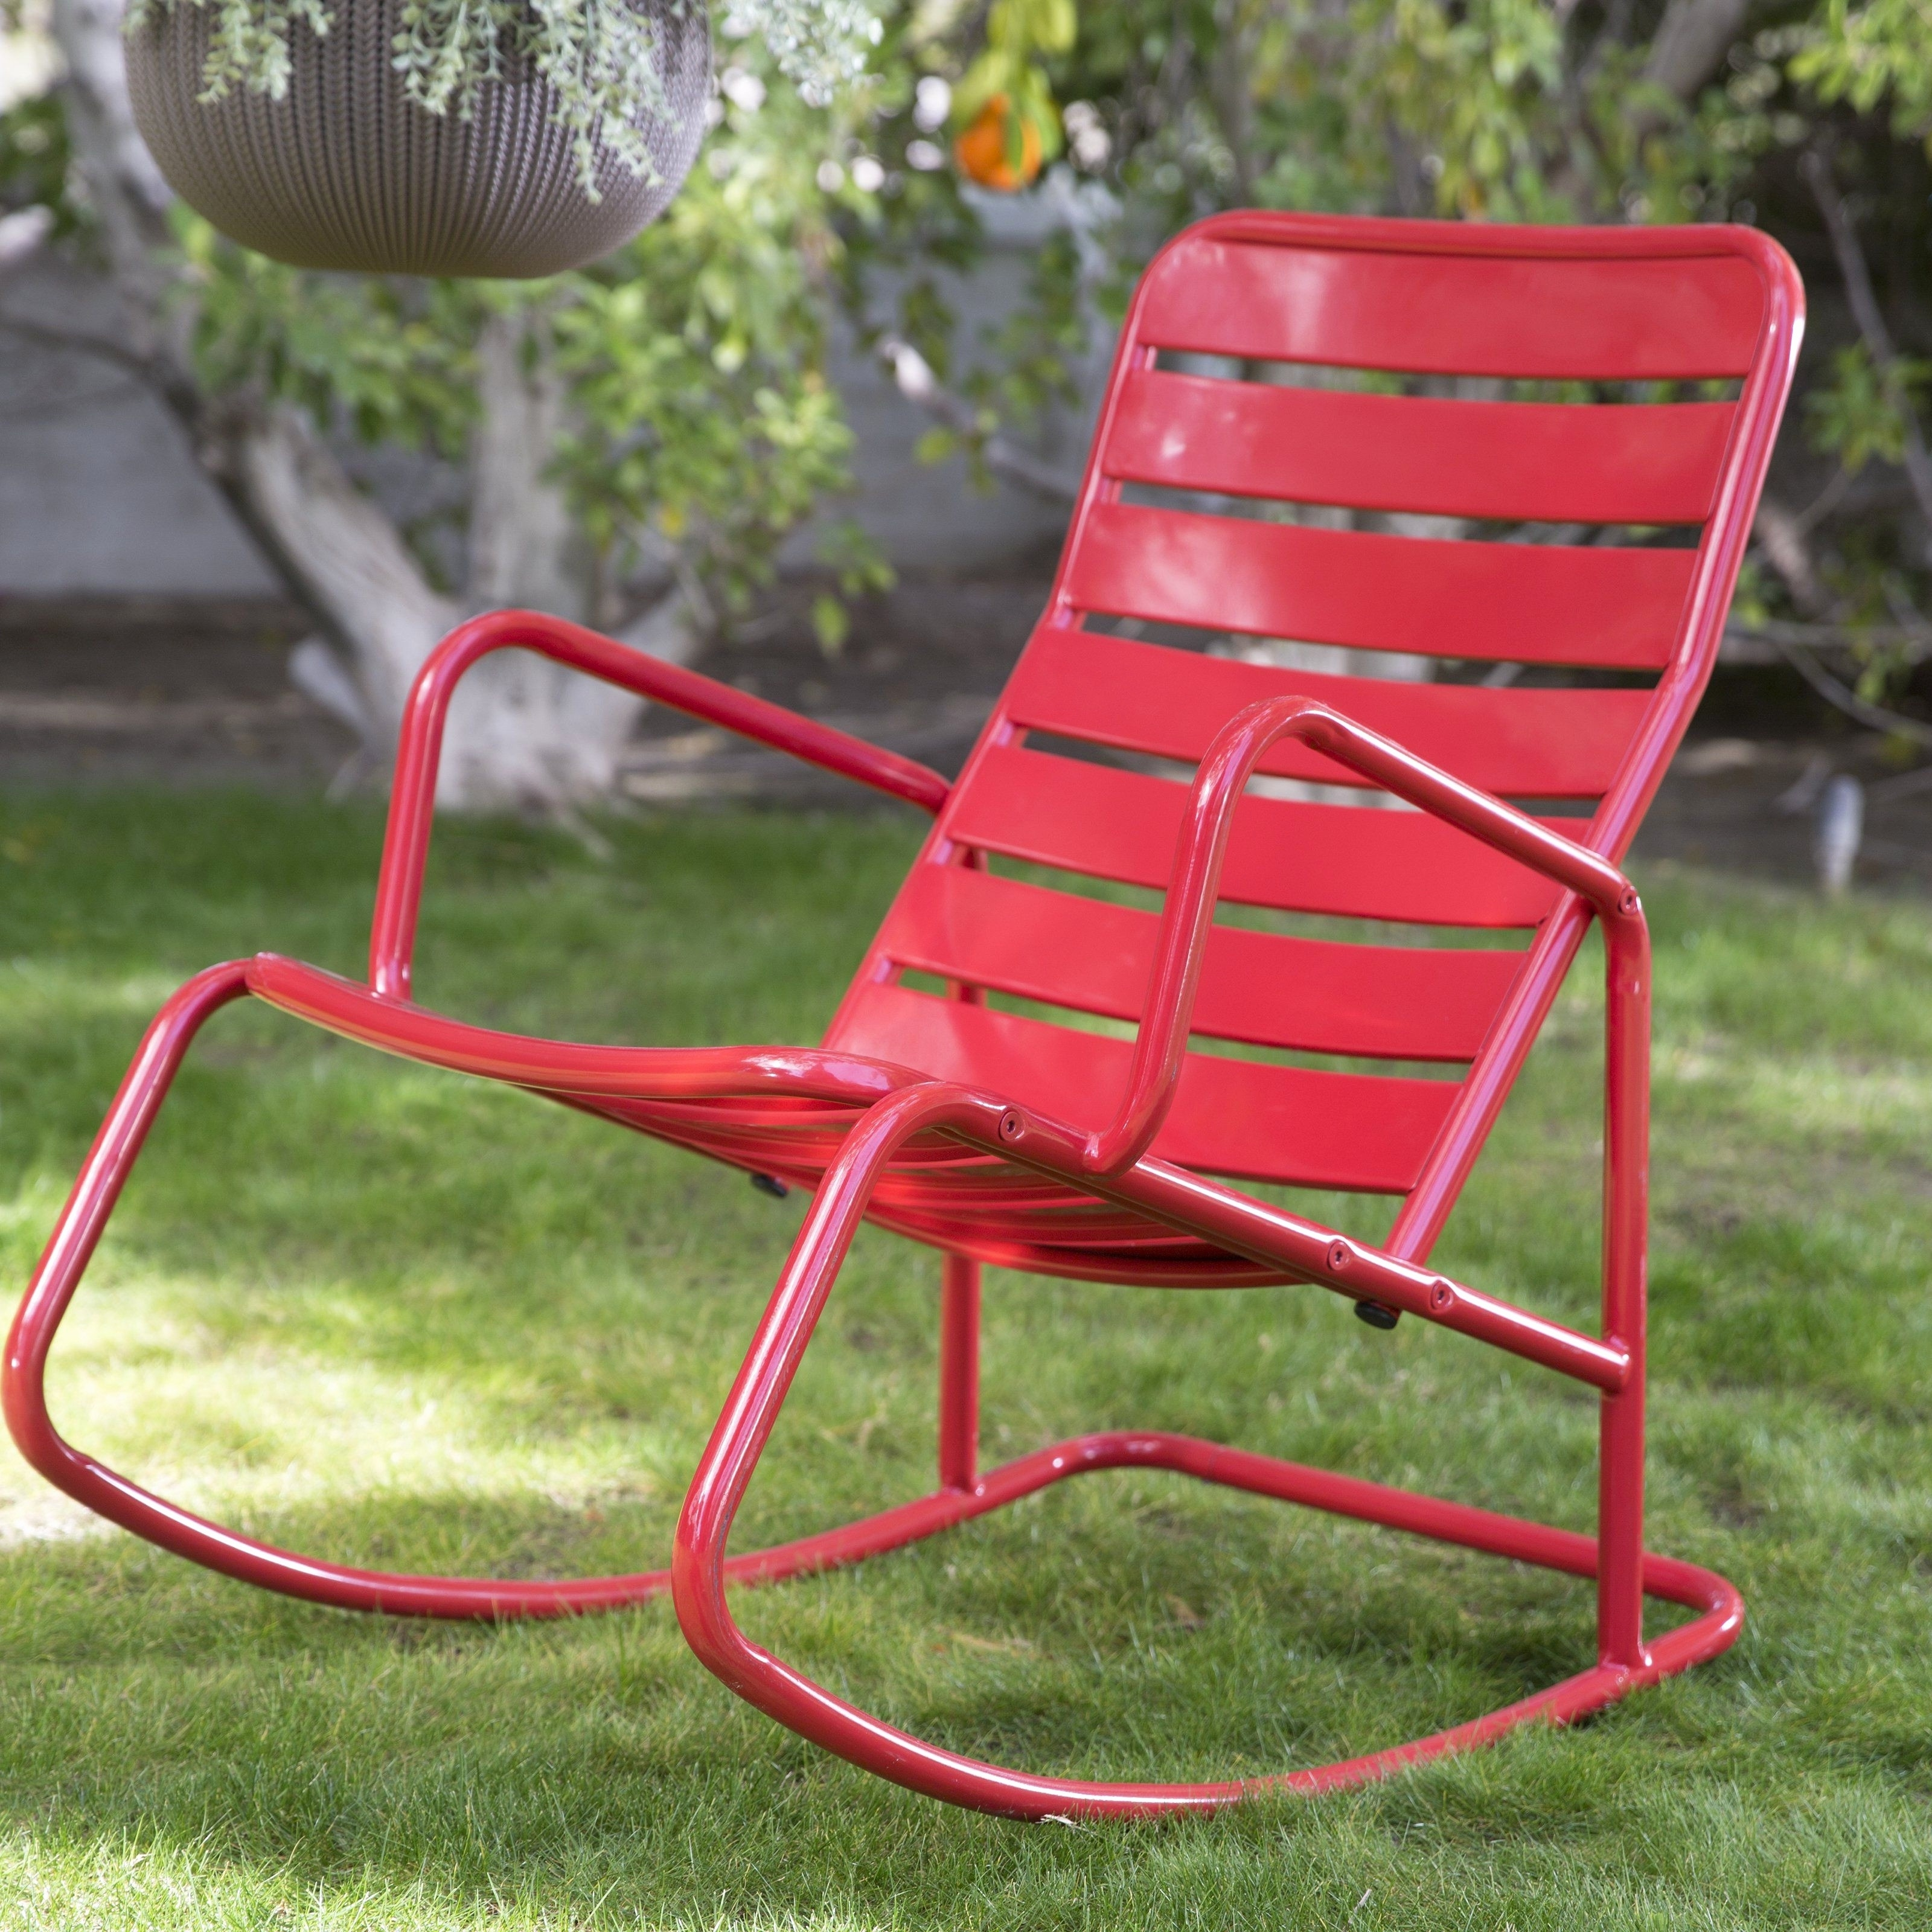 Metal Patio Rocking Chairs Elegant Wicker Patio Rocker Best Outdoor Regarding Well Liked Patio Metal Rocking Chairs (View 4 of 15)